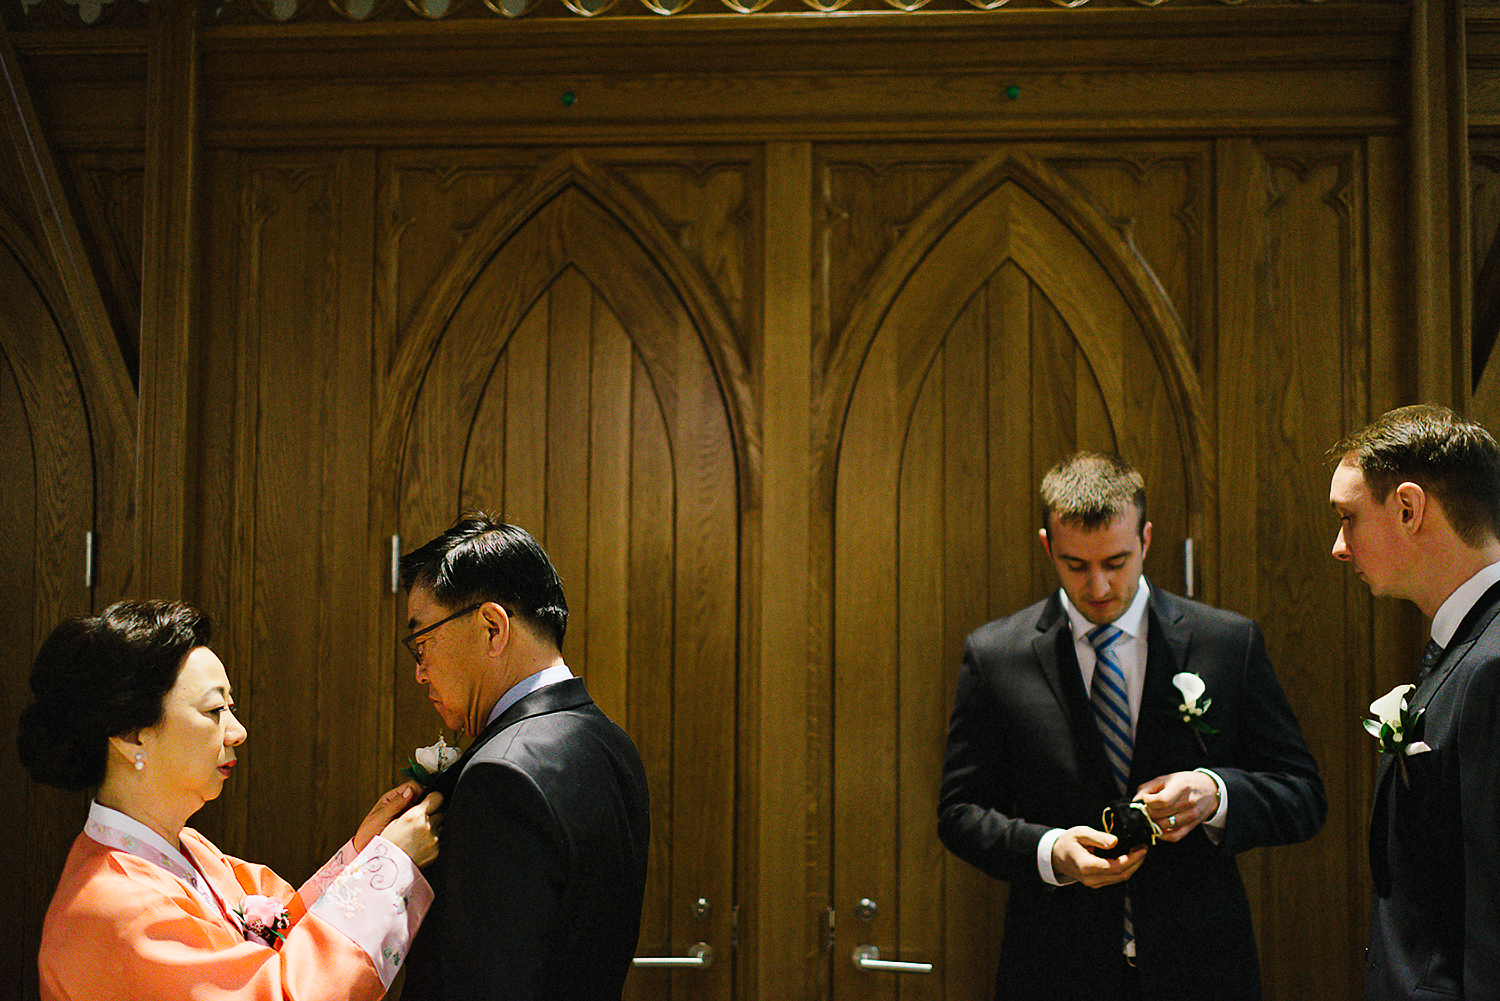 Best-Wedding-Photographers-Toronto_-Urban-City-Wedding-Photography-Downtown-Toronto-Photographer_Vintage-Bride-and-Groom-Details_The-Chase-Wedding-Venue_Candid-Photojournalistic-Documentary-Ceremony-Candid-Groom-and-Parents-Moment.jpg